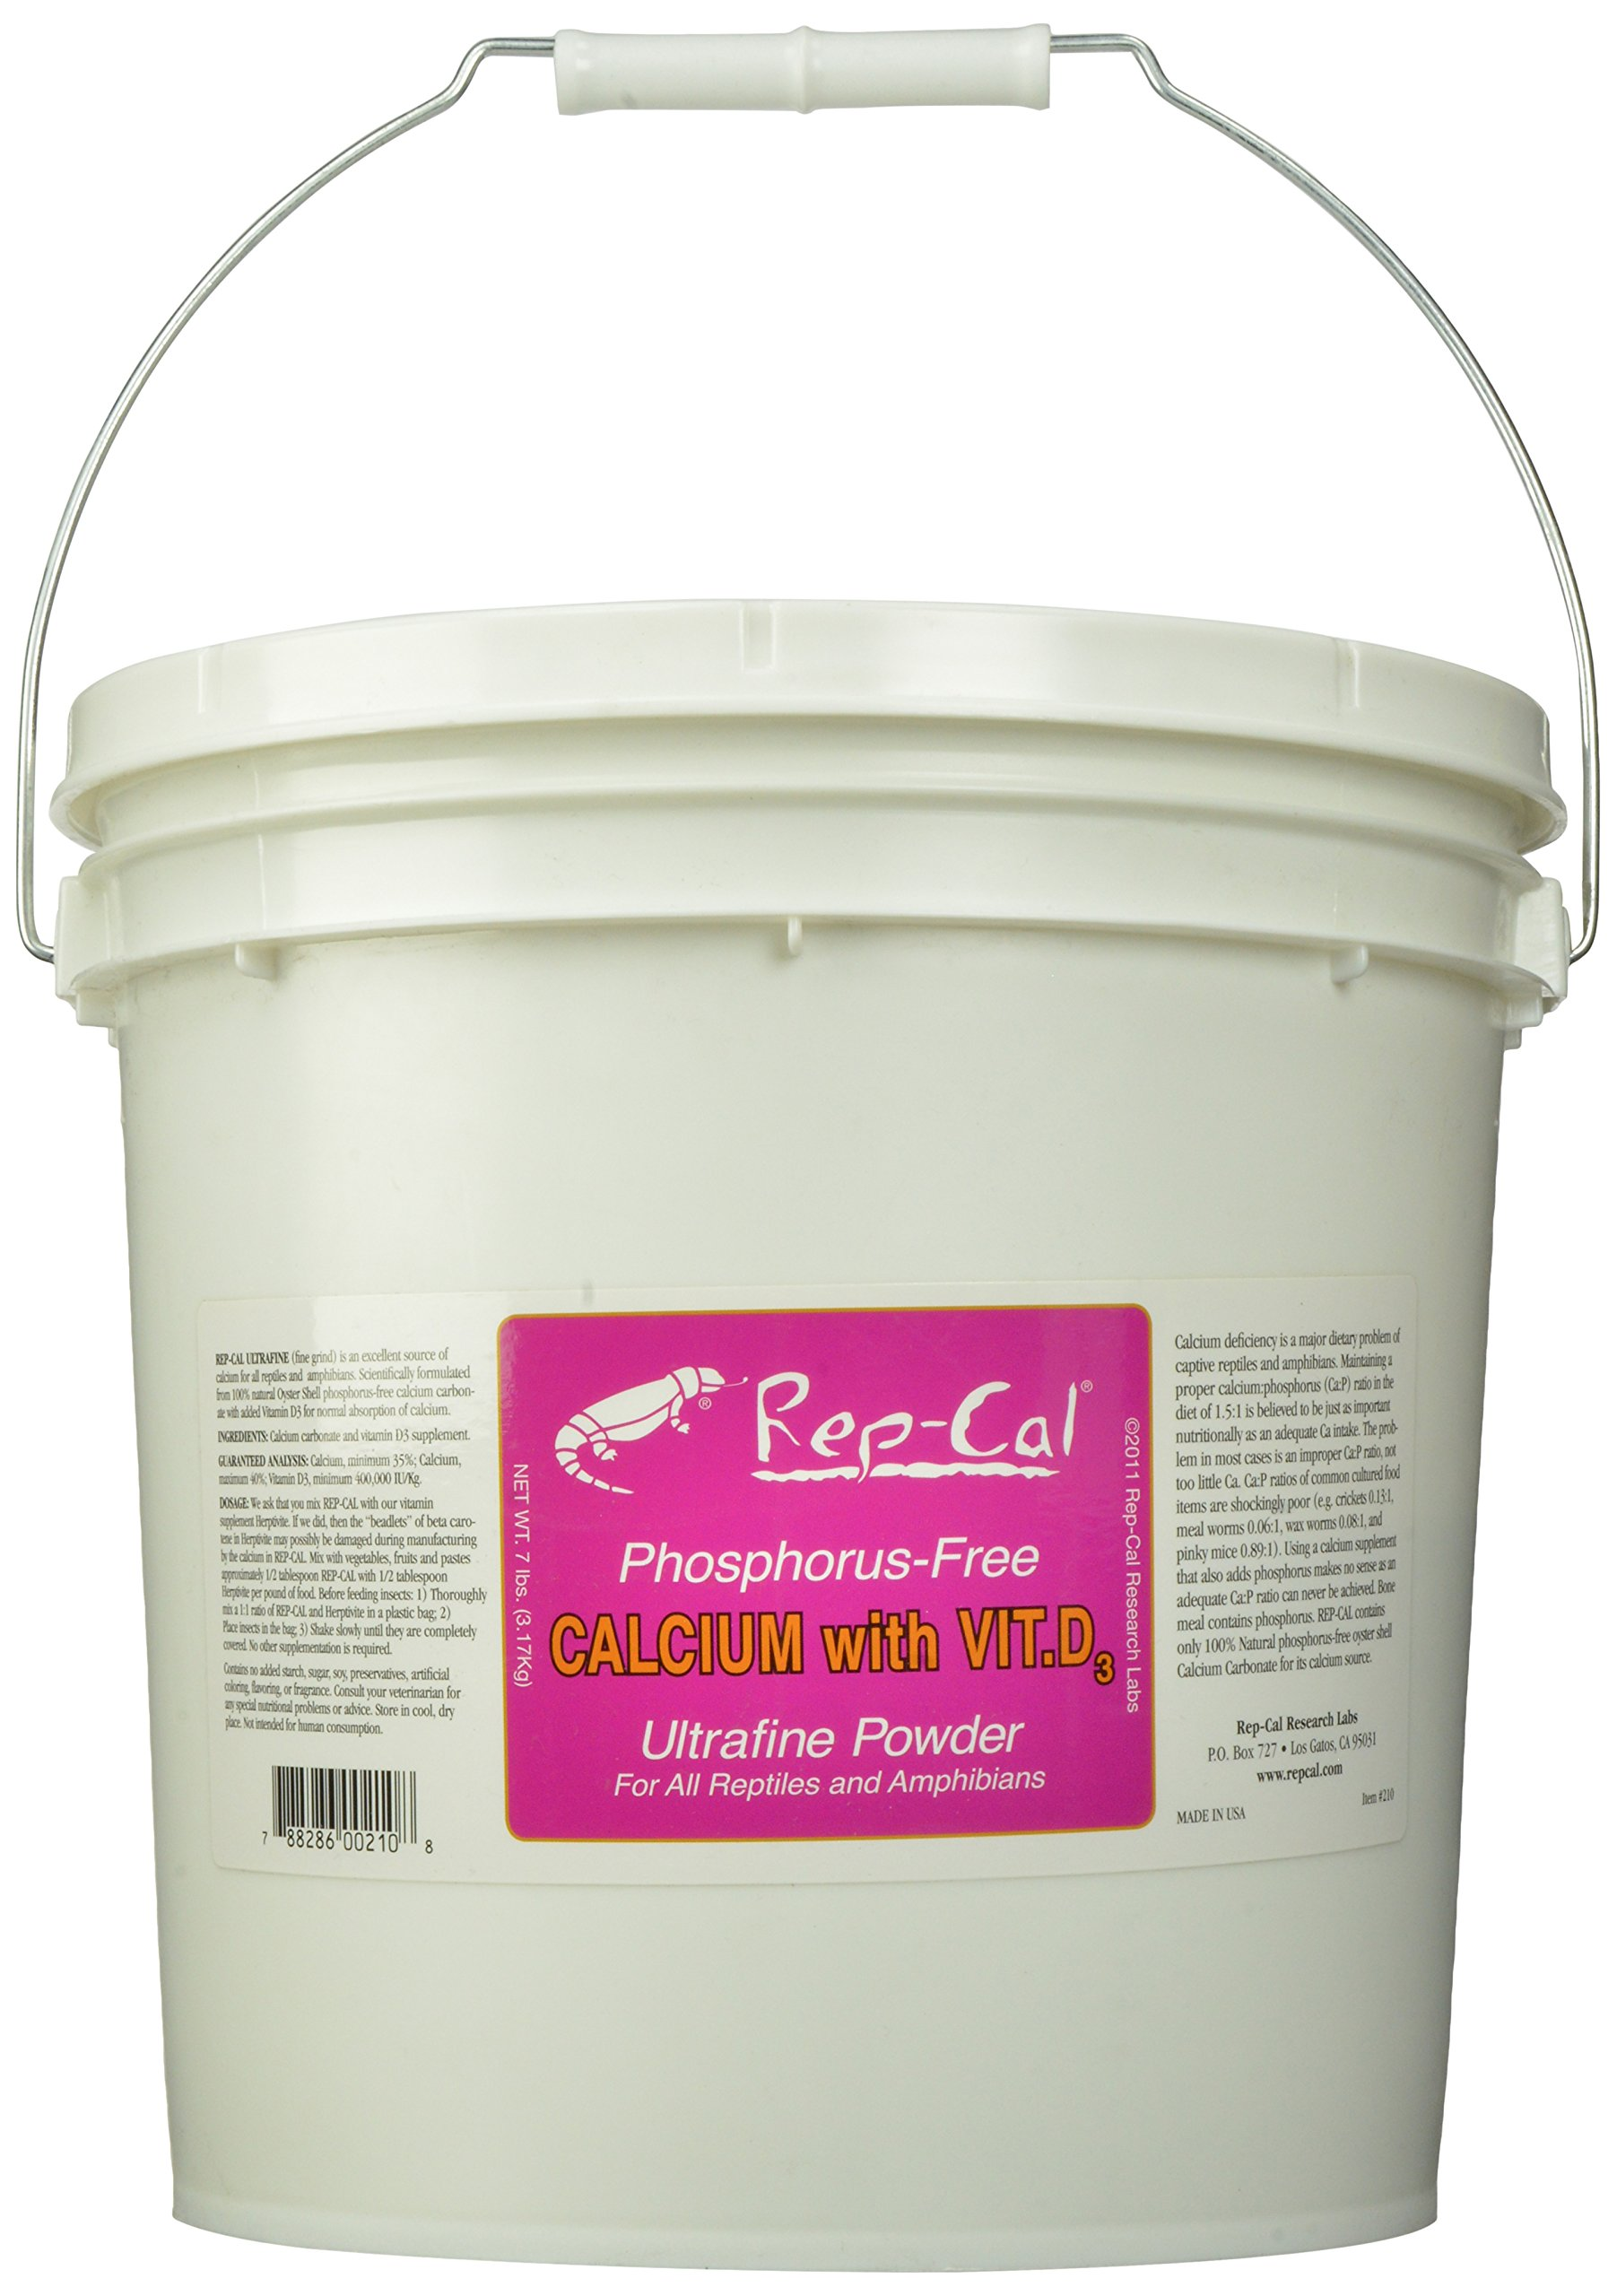 Rep-Cal SRP00210 Phosphorous-Free Calcium Ultrafine Powder Reptile/Amphibian Supplement with Vitamin D3, 7-Pound by Rep-Cal